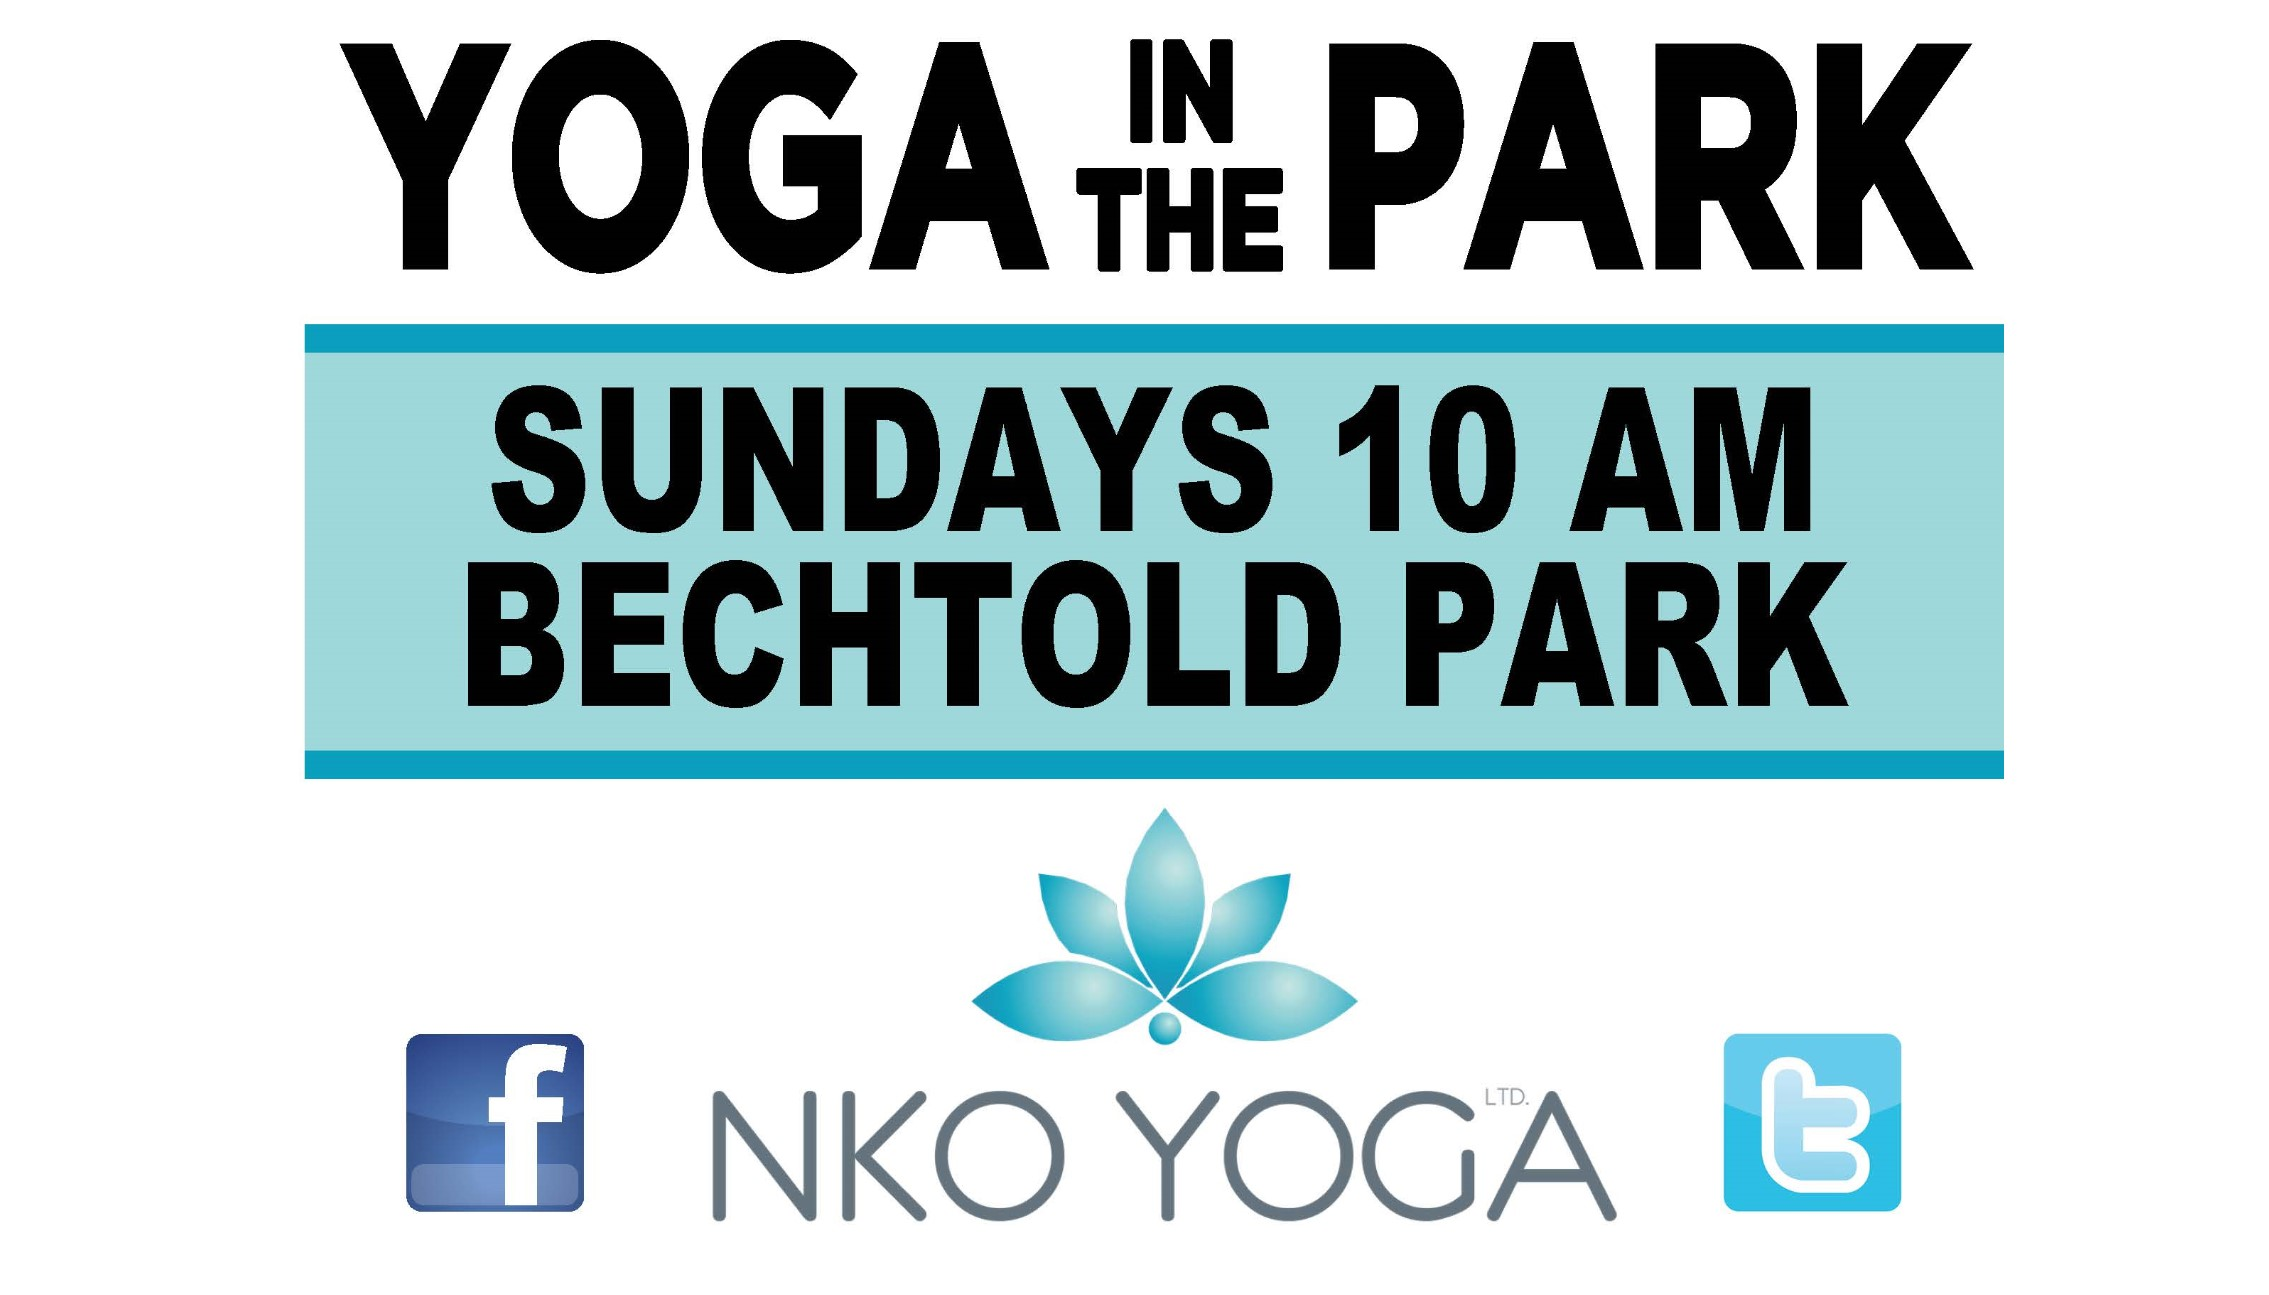 Yoga in the Park Bechtold Park sign